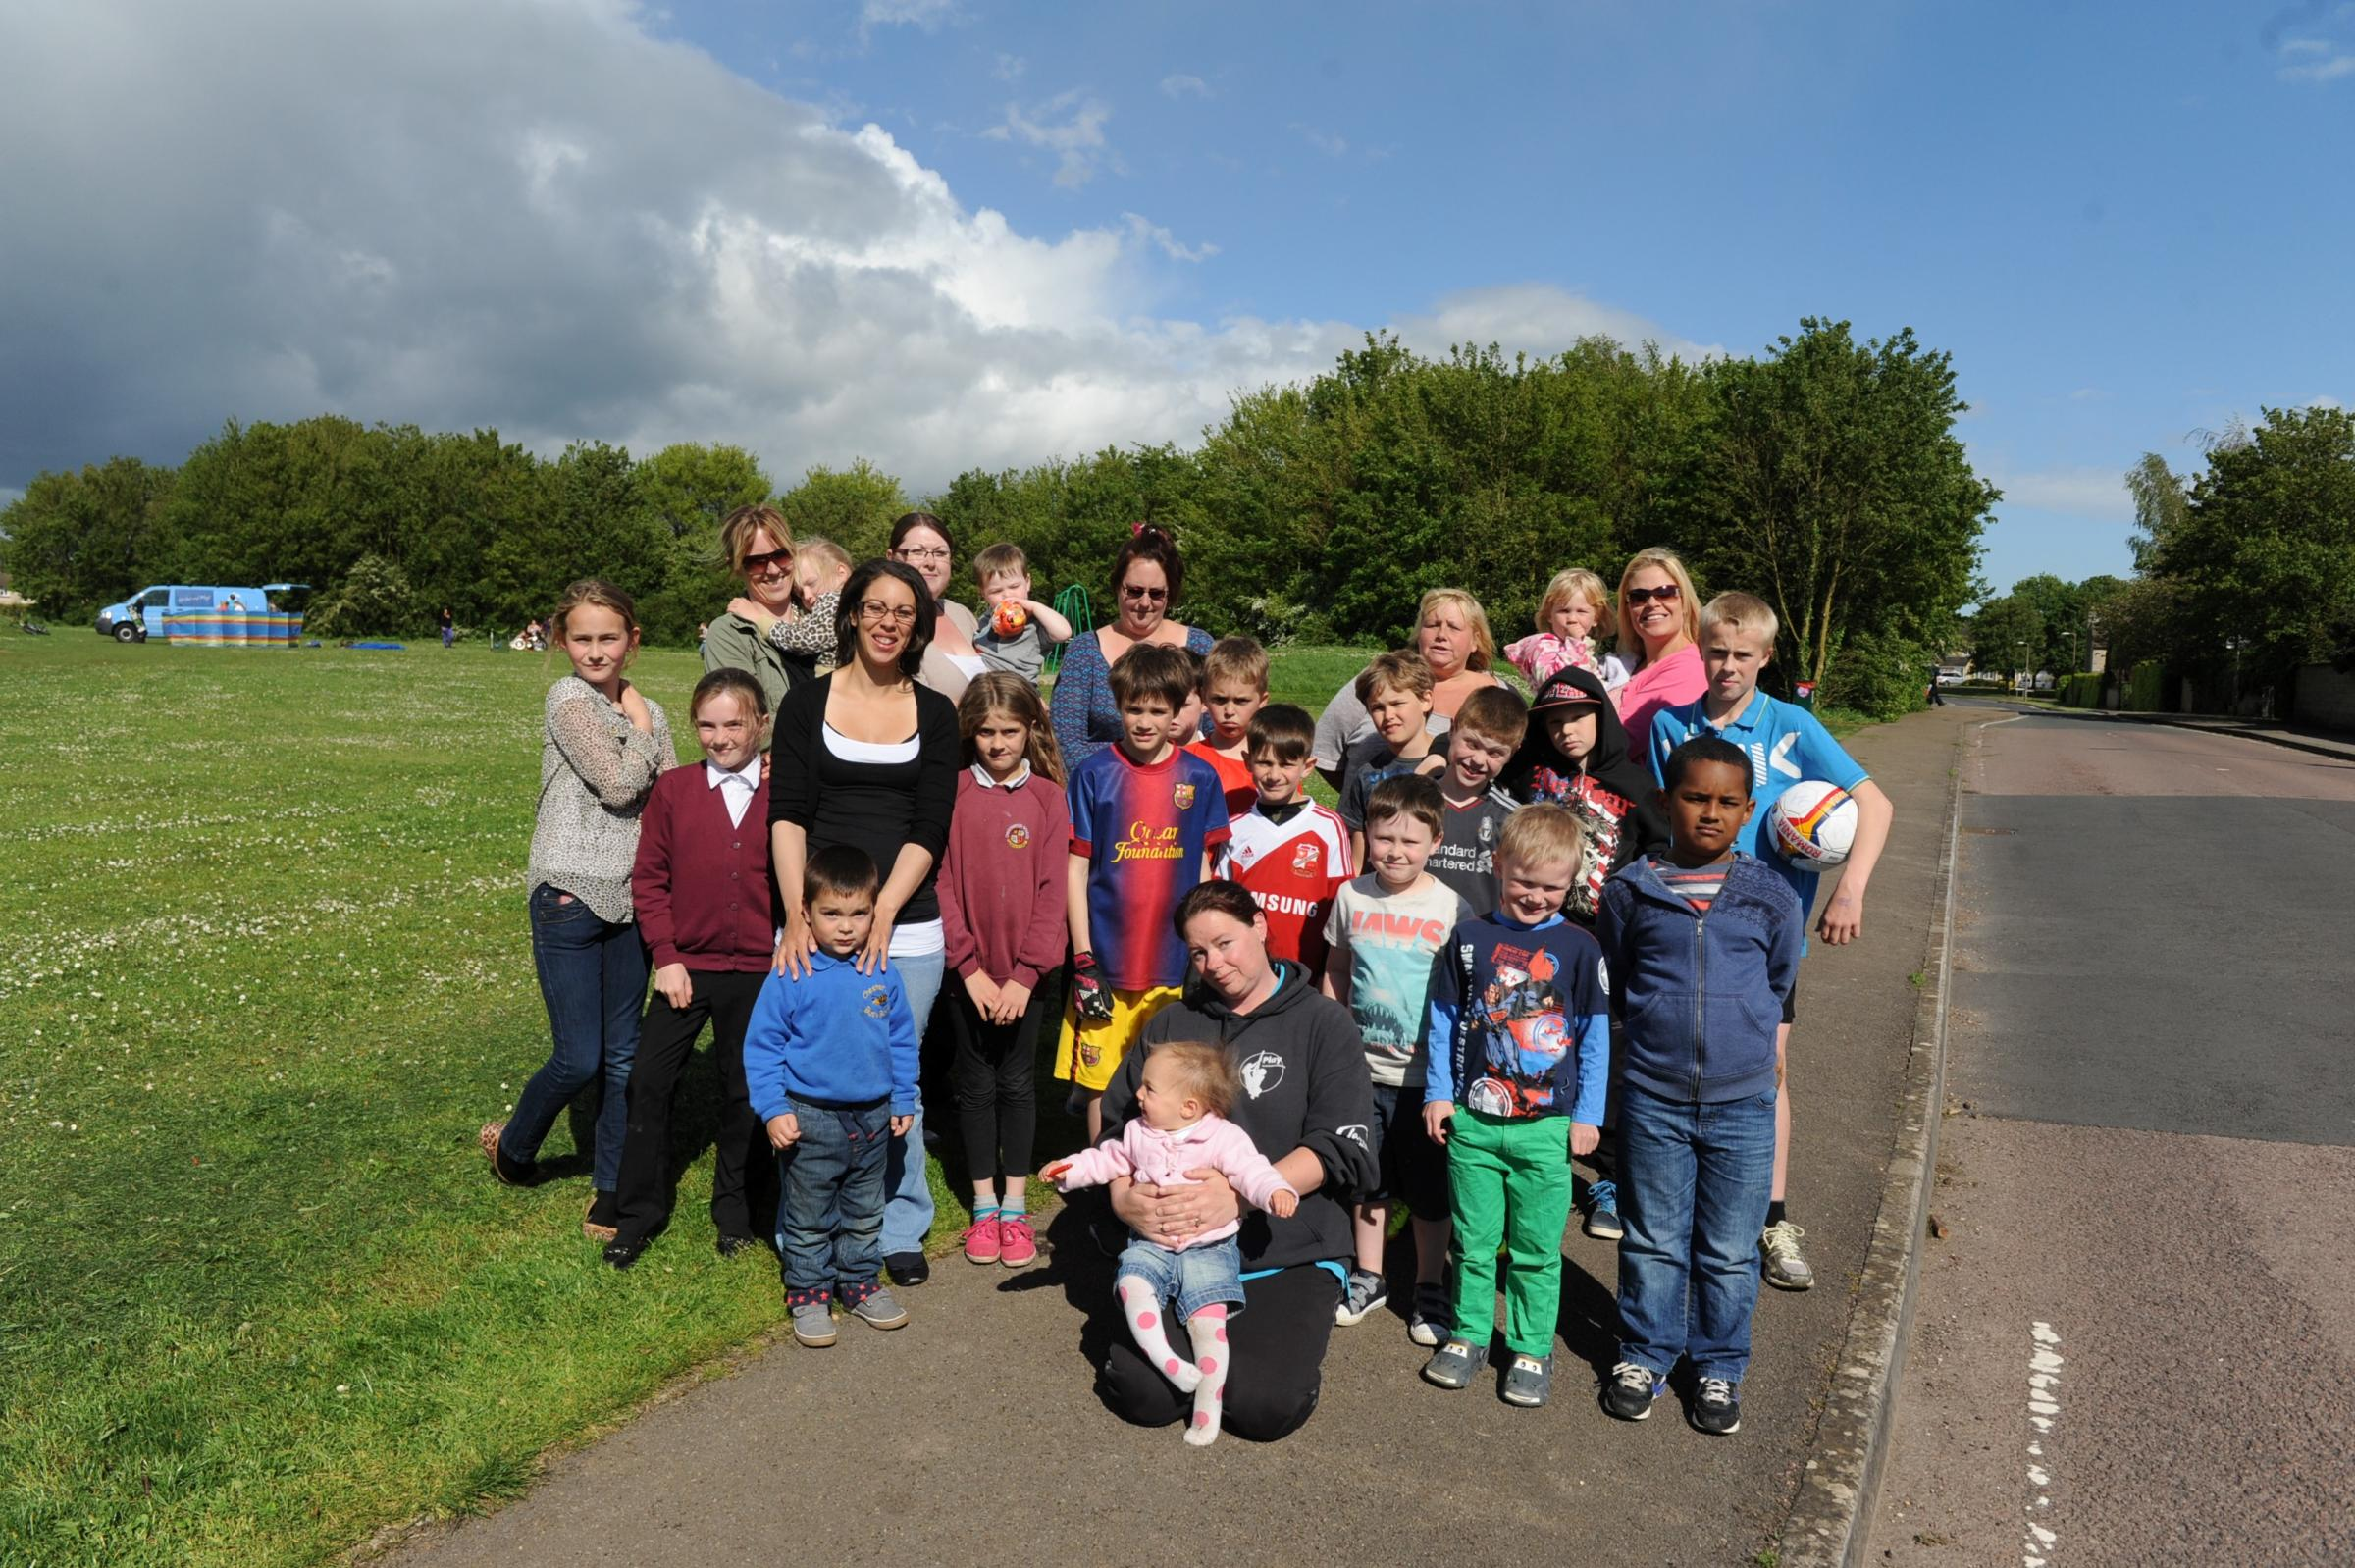 Concerned Chesterton parents are campaigning for a fence to be built around a popular play area